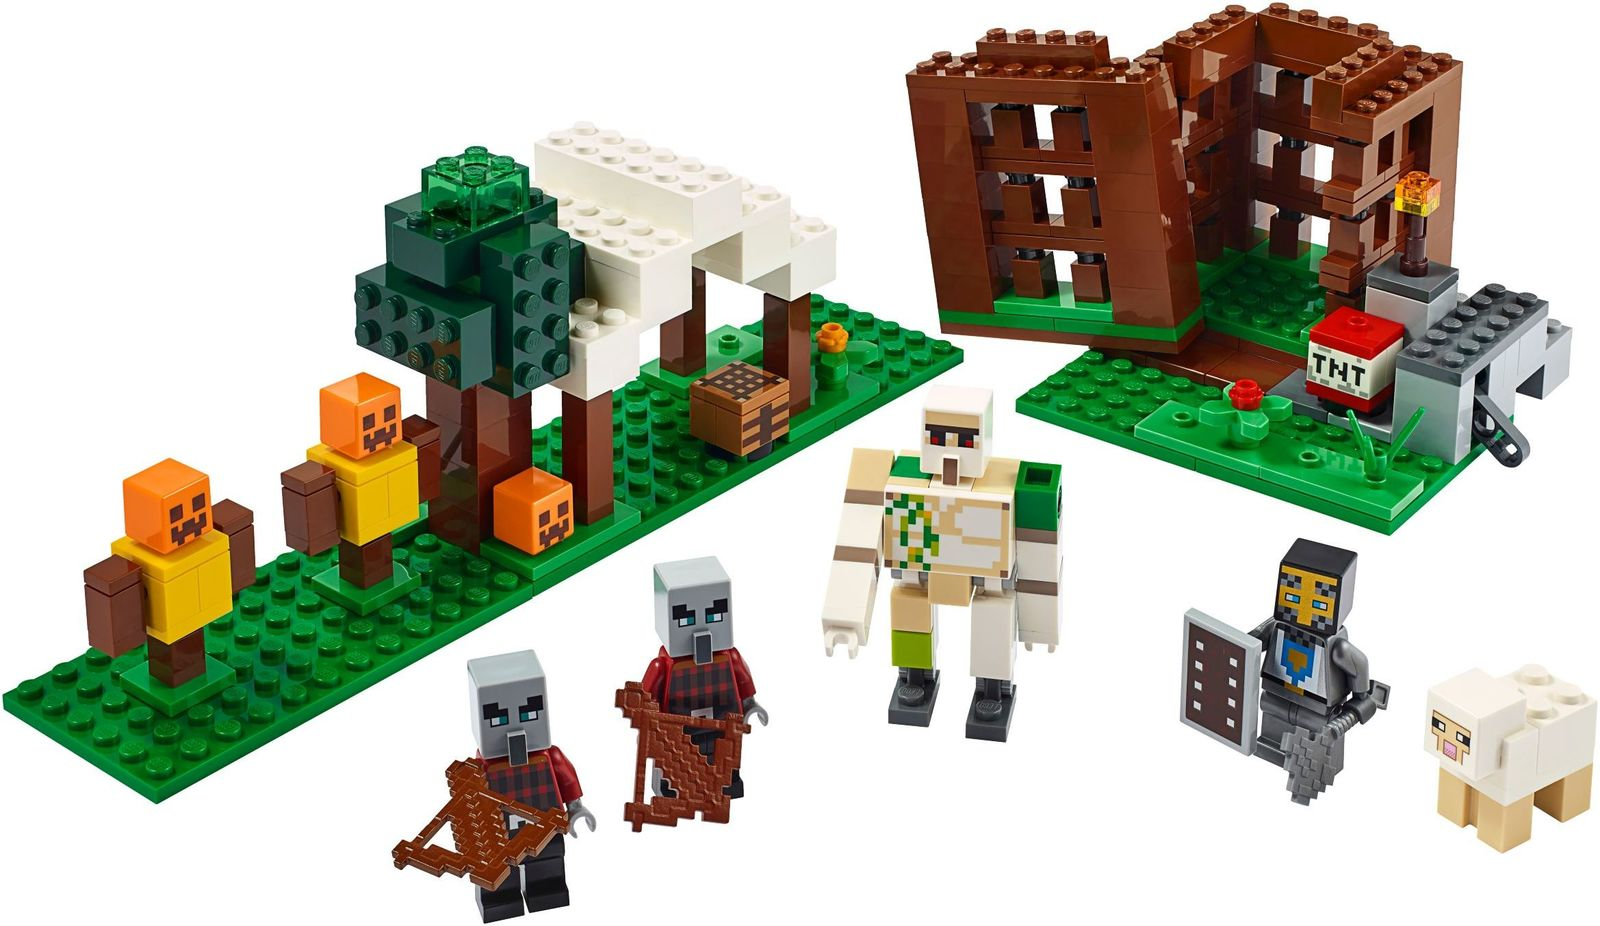 LEGO Minecraft: The Pillager Outpost - (21159) image